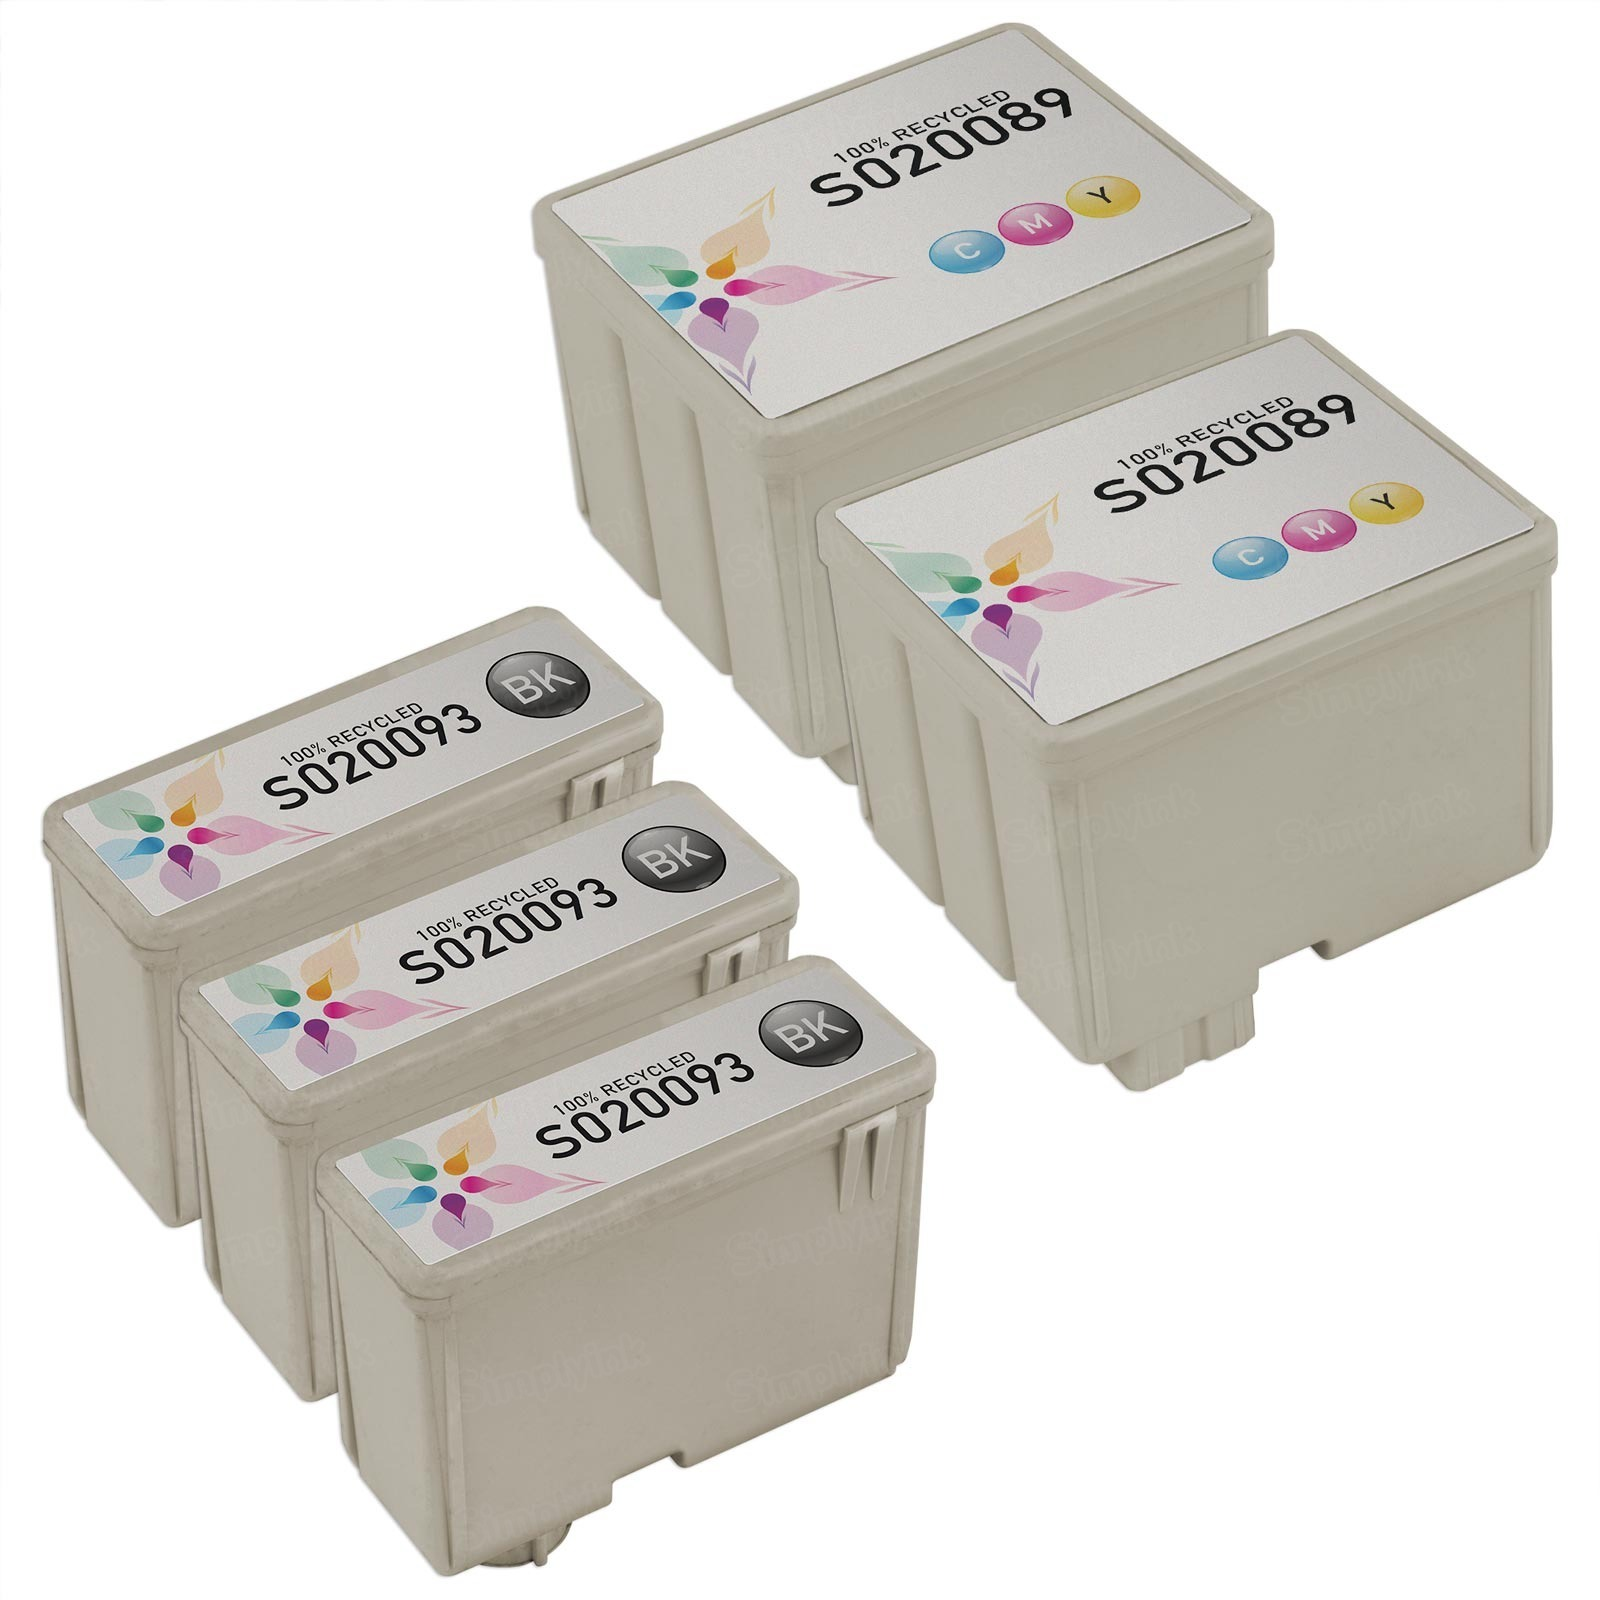 Inkjet Supplies for Epson Printers - Compatible Bulk Set of 5 Ink Cartridges 3 Black Epson S020093 and 2 Color Epson S020089